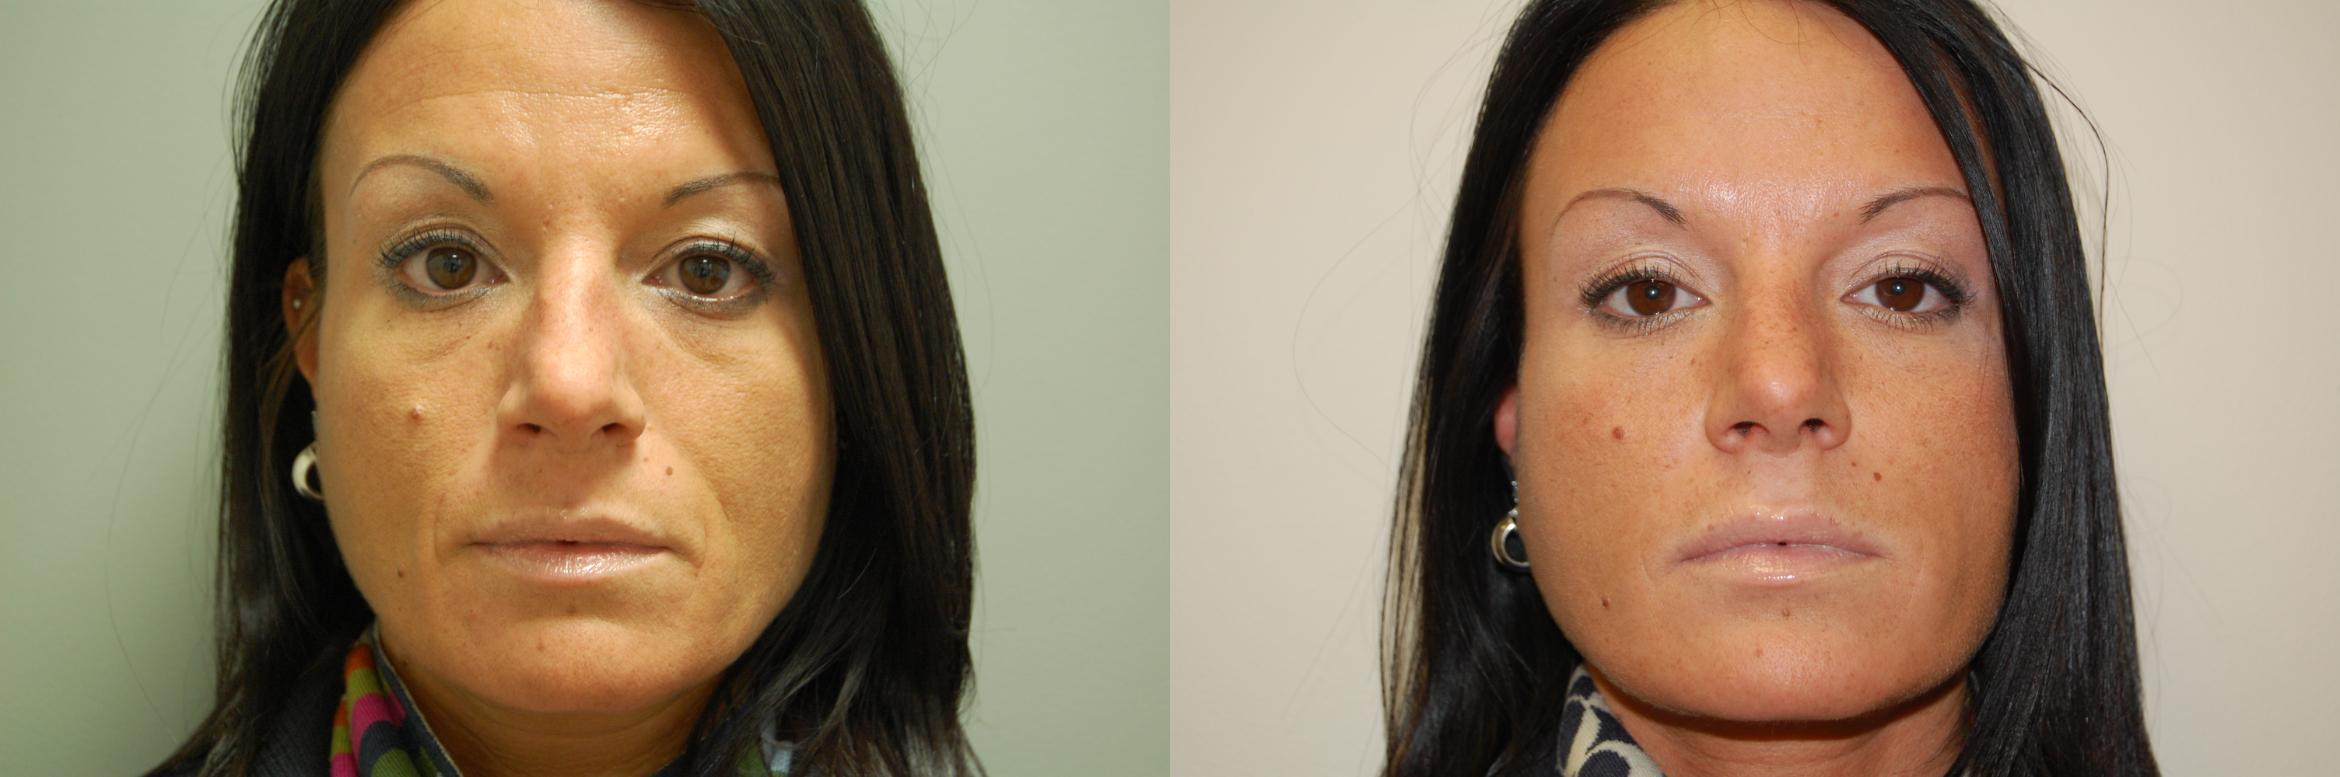 BOTOX Cosmetic Before & After Photo | Longmeadow, MA | Aesthetic Plastic & Reconstructive Surgery